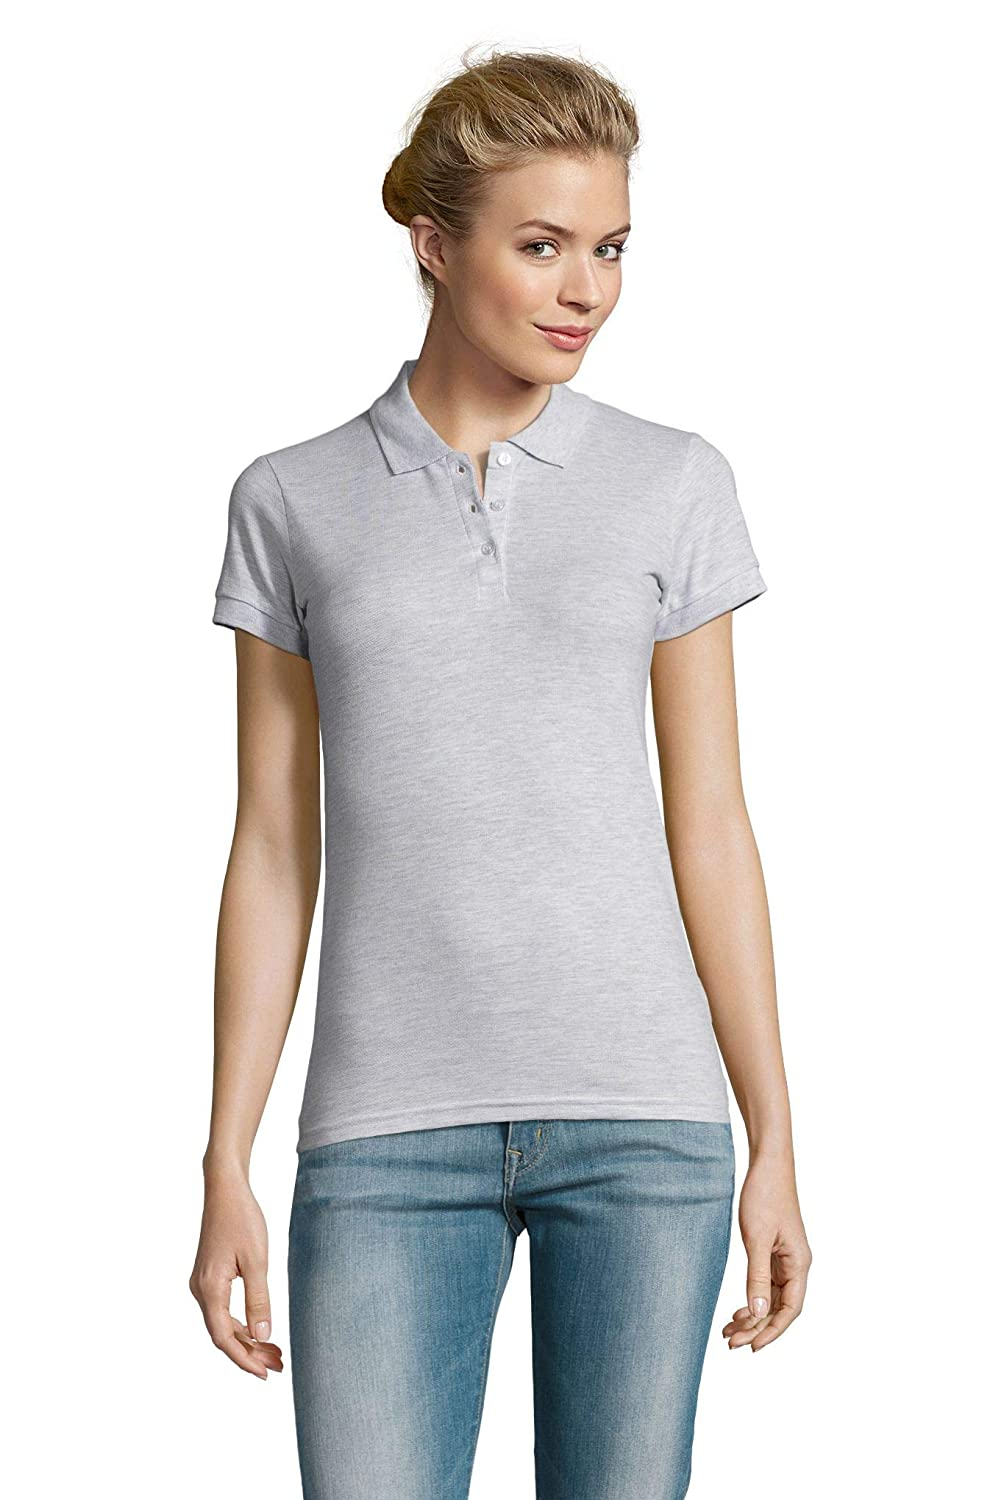 SOLS Sol s - Women s Polo Camiseta Perfect: Amazon.es: Ropa y ...